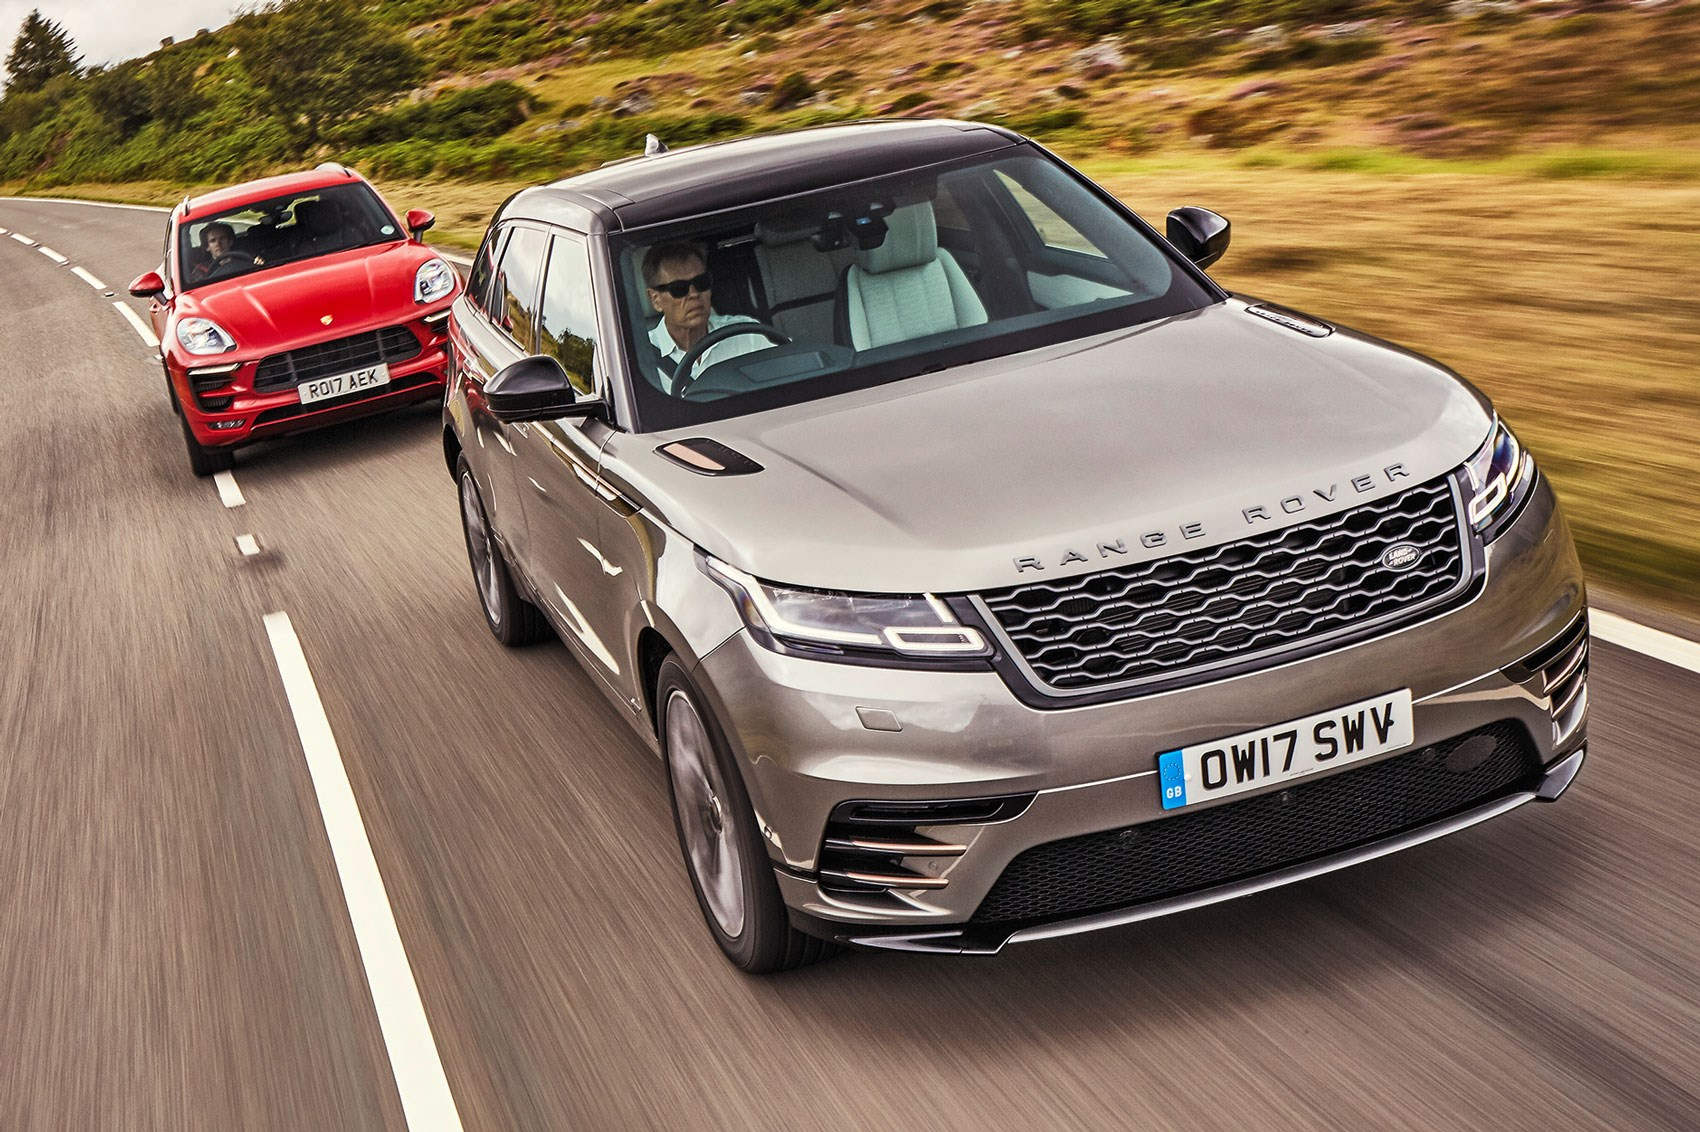 Range Rover Matte Black >> Range Rover Velar vs Porsche Macan GTS (2017) twin test review by CAR Magazine